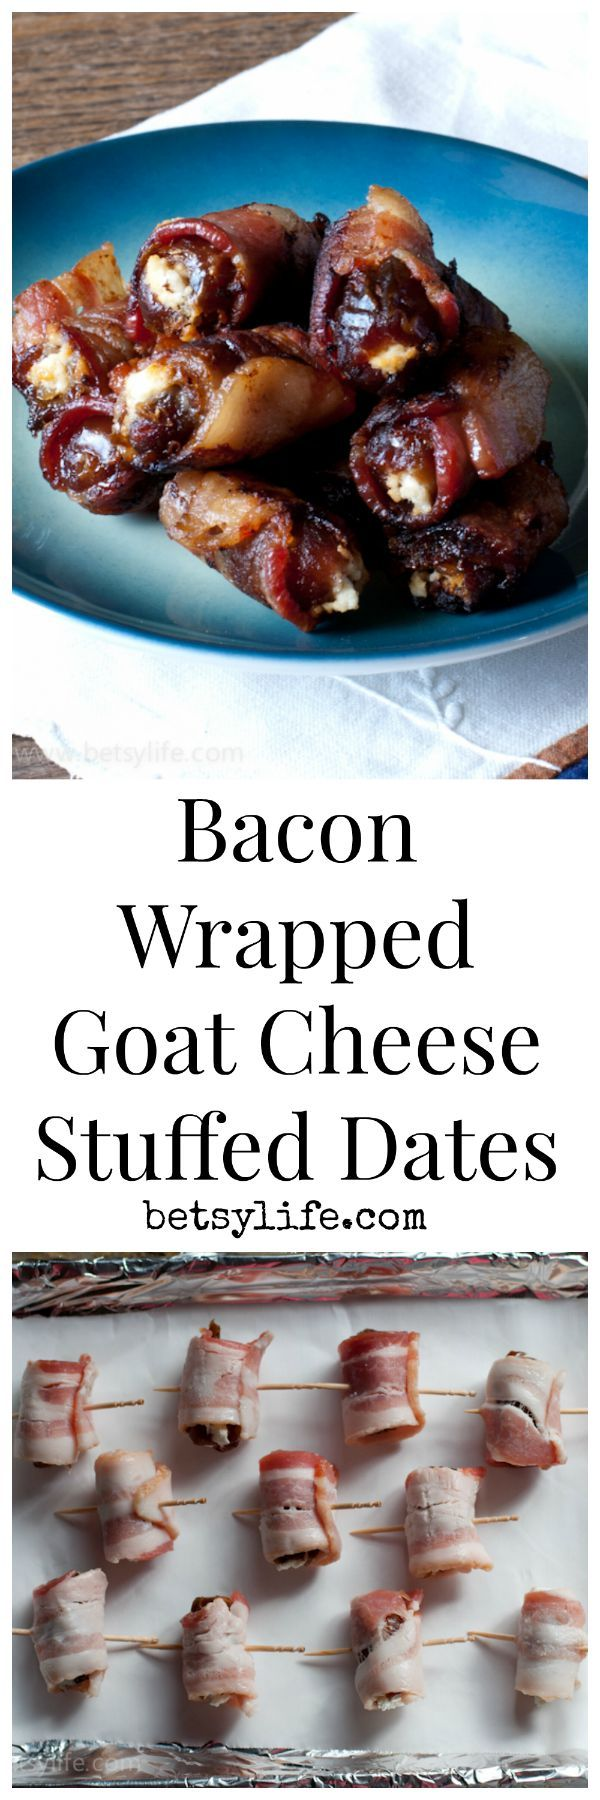 Bacon Wrapped Goat Cheese Stuffed Dates. A super simple appetizer for any holiday party. | Betsylife.com